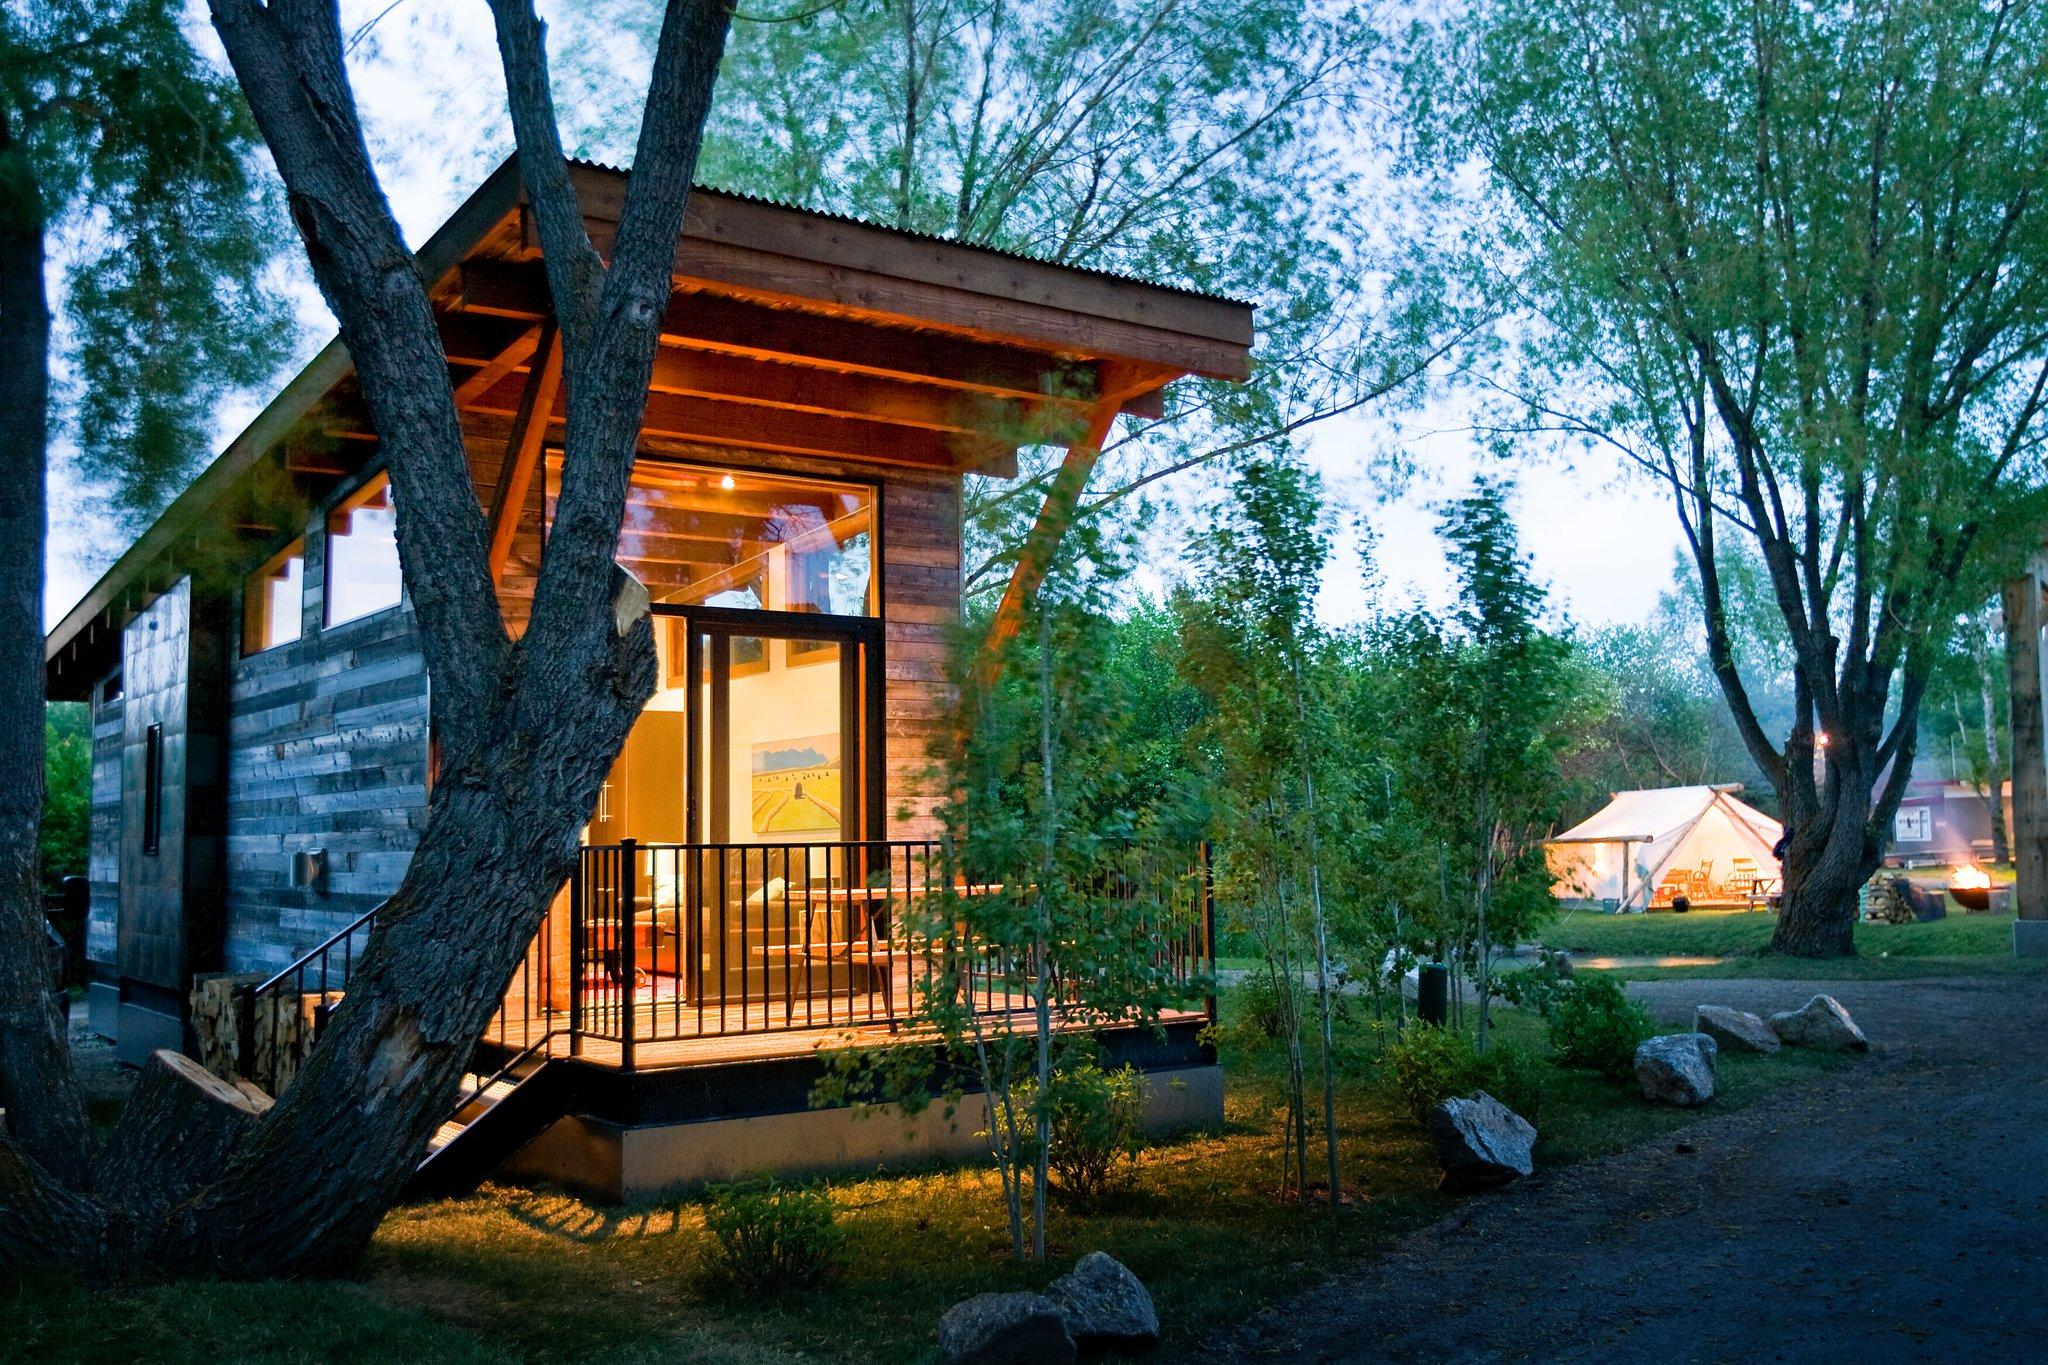 Gallery: The Wedge, A Small Cabin On Wheels